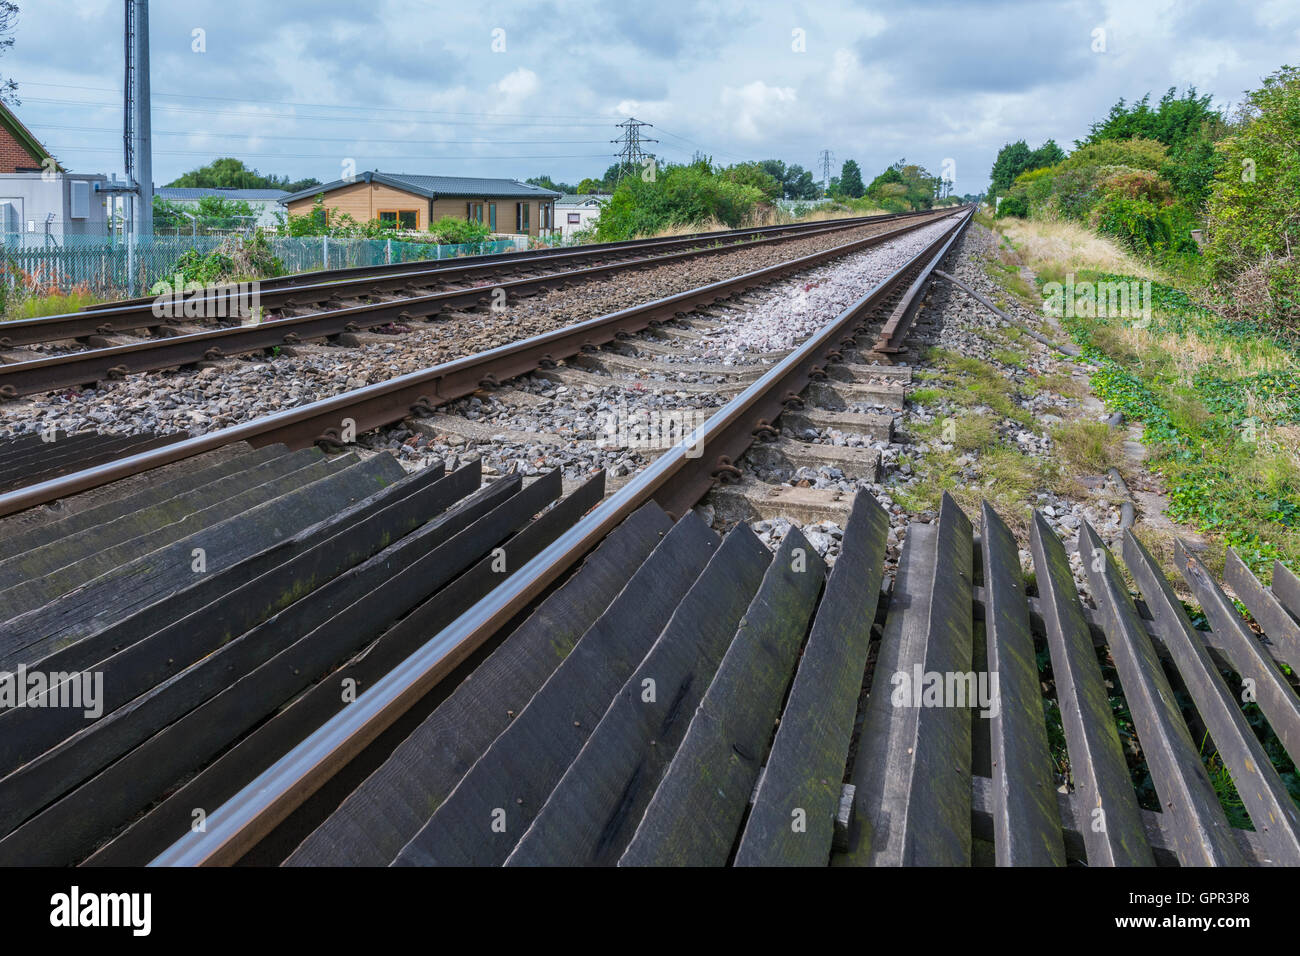 Railway tracks from low perspective looking along the track, in the UK, taken from a public pedestrian crossing. - Stock Image